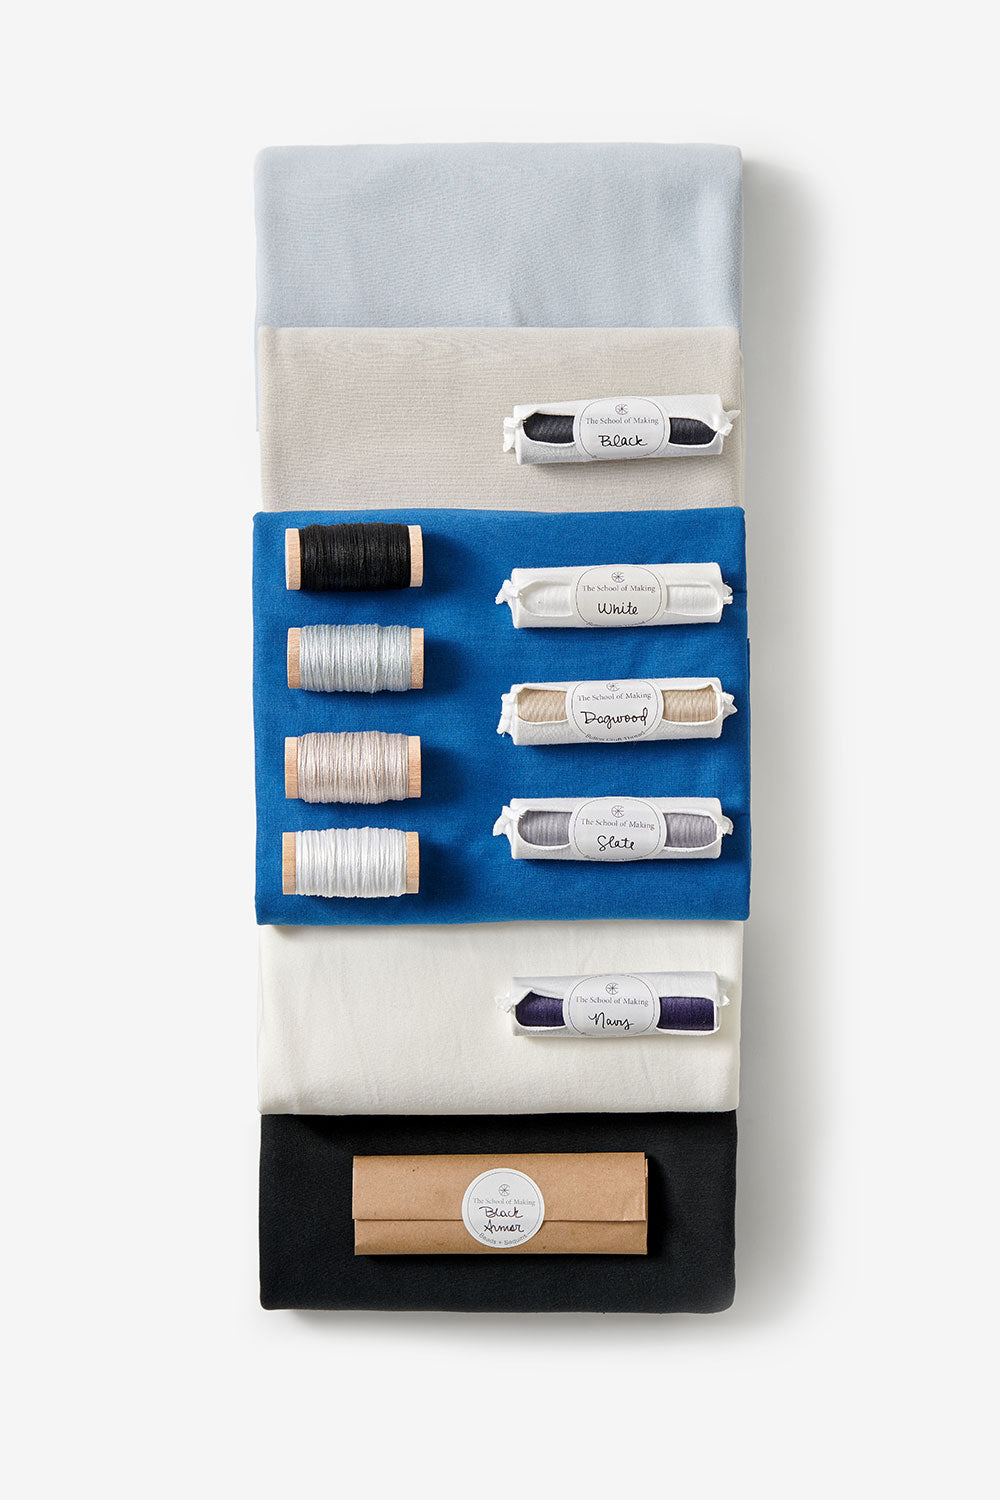 The School of Making Studio Bundle Maker Supplies for DIY Hand-Sewing